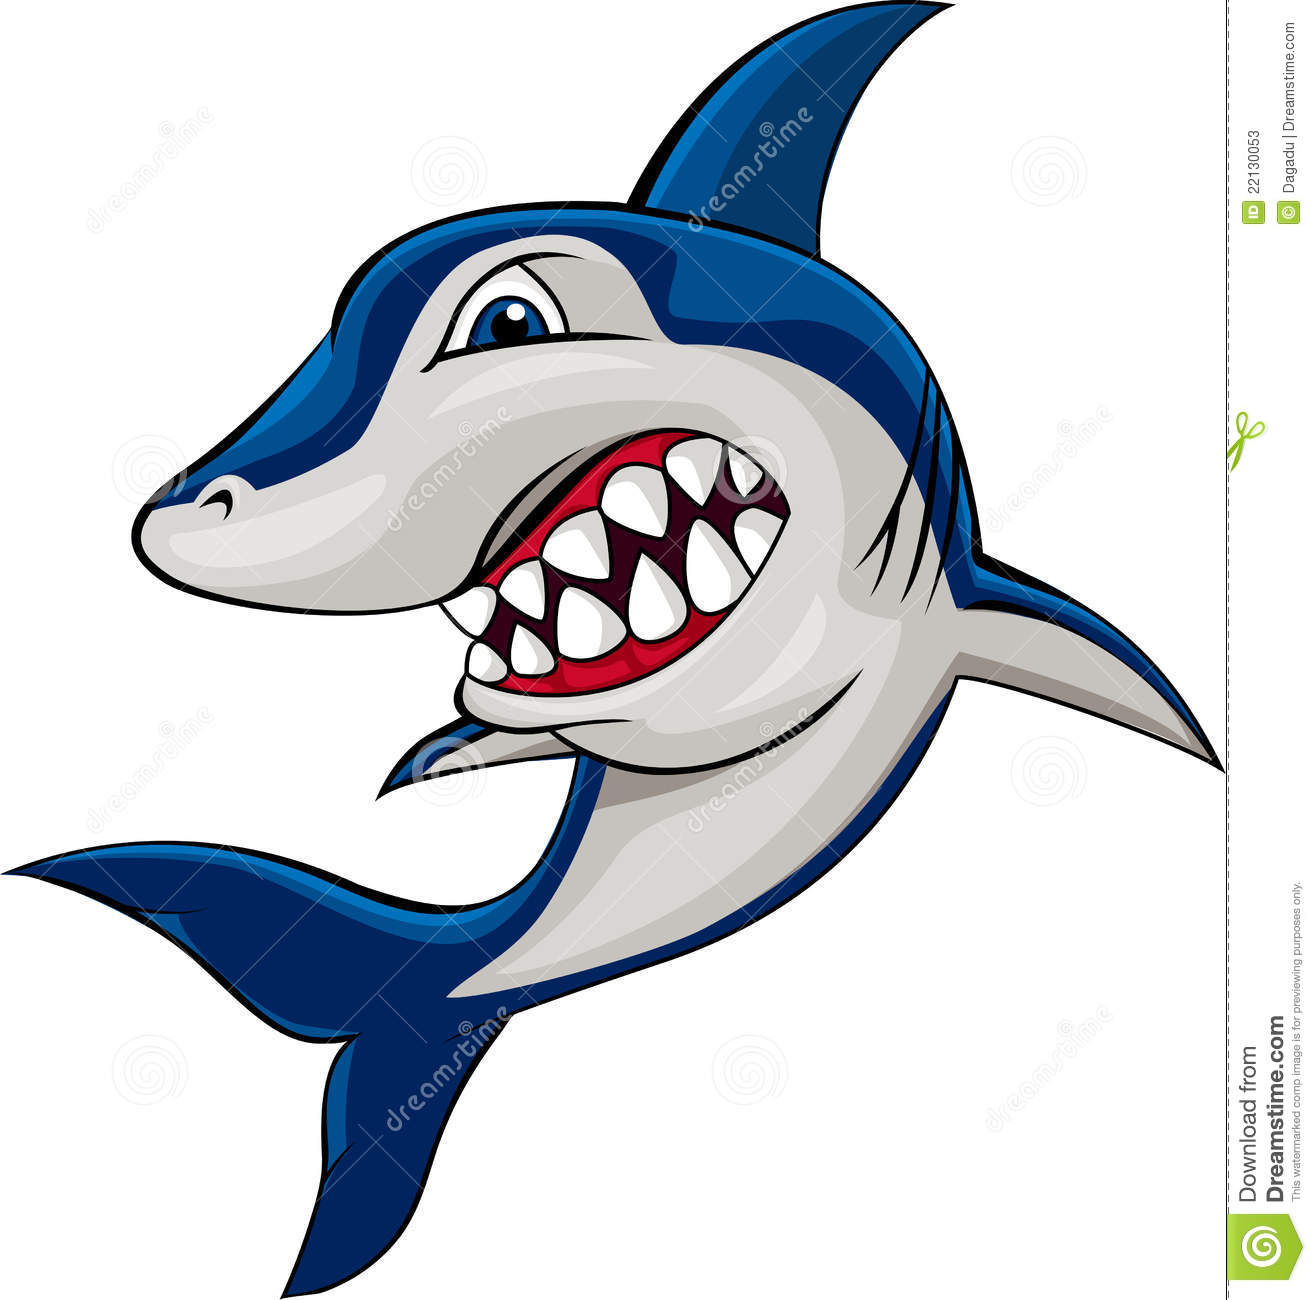 Baby Eyes Eye Happy Kid Girl Faces Kids Face in addition Stock Photos Angry Shark Image22130053 additionally Royalty Free Stock Photos Cartoon Grinning Pear Illustration Big Grin Image40874858 together with Brave Characters 45049 also Classic Monster Cliparts. on cartoon monster mouth